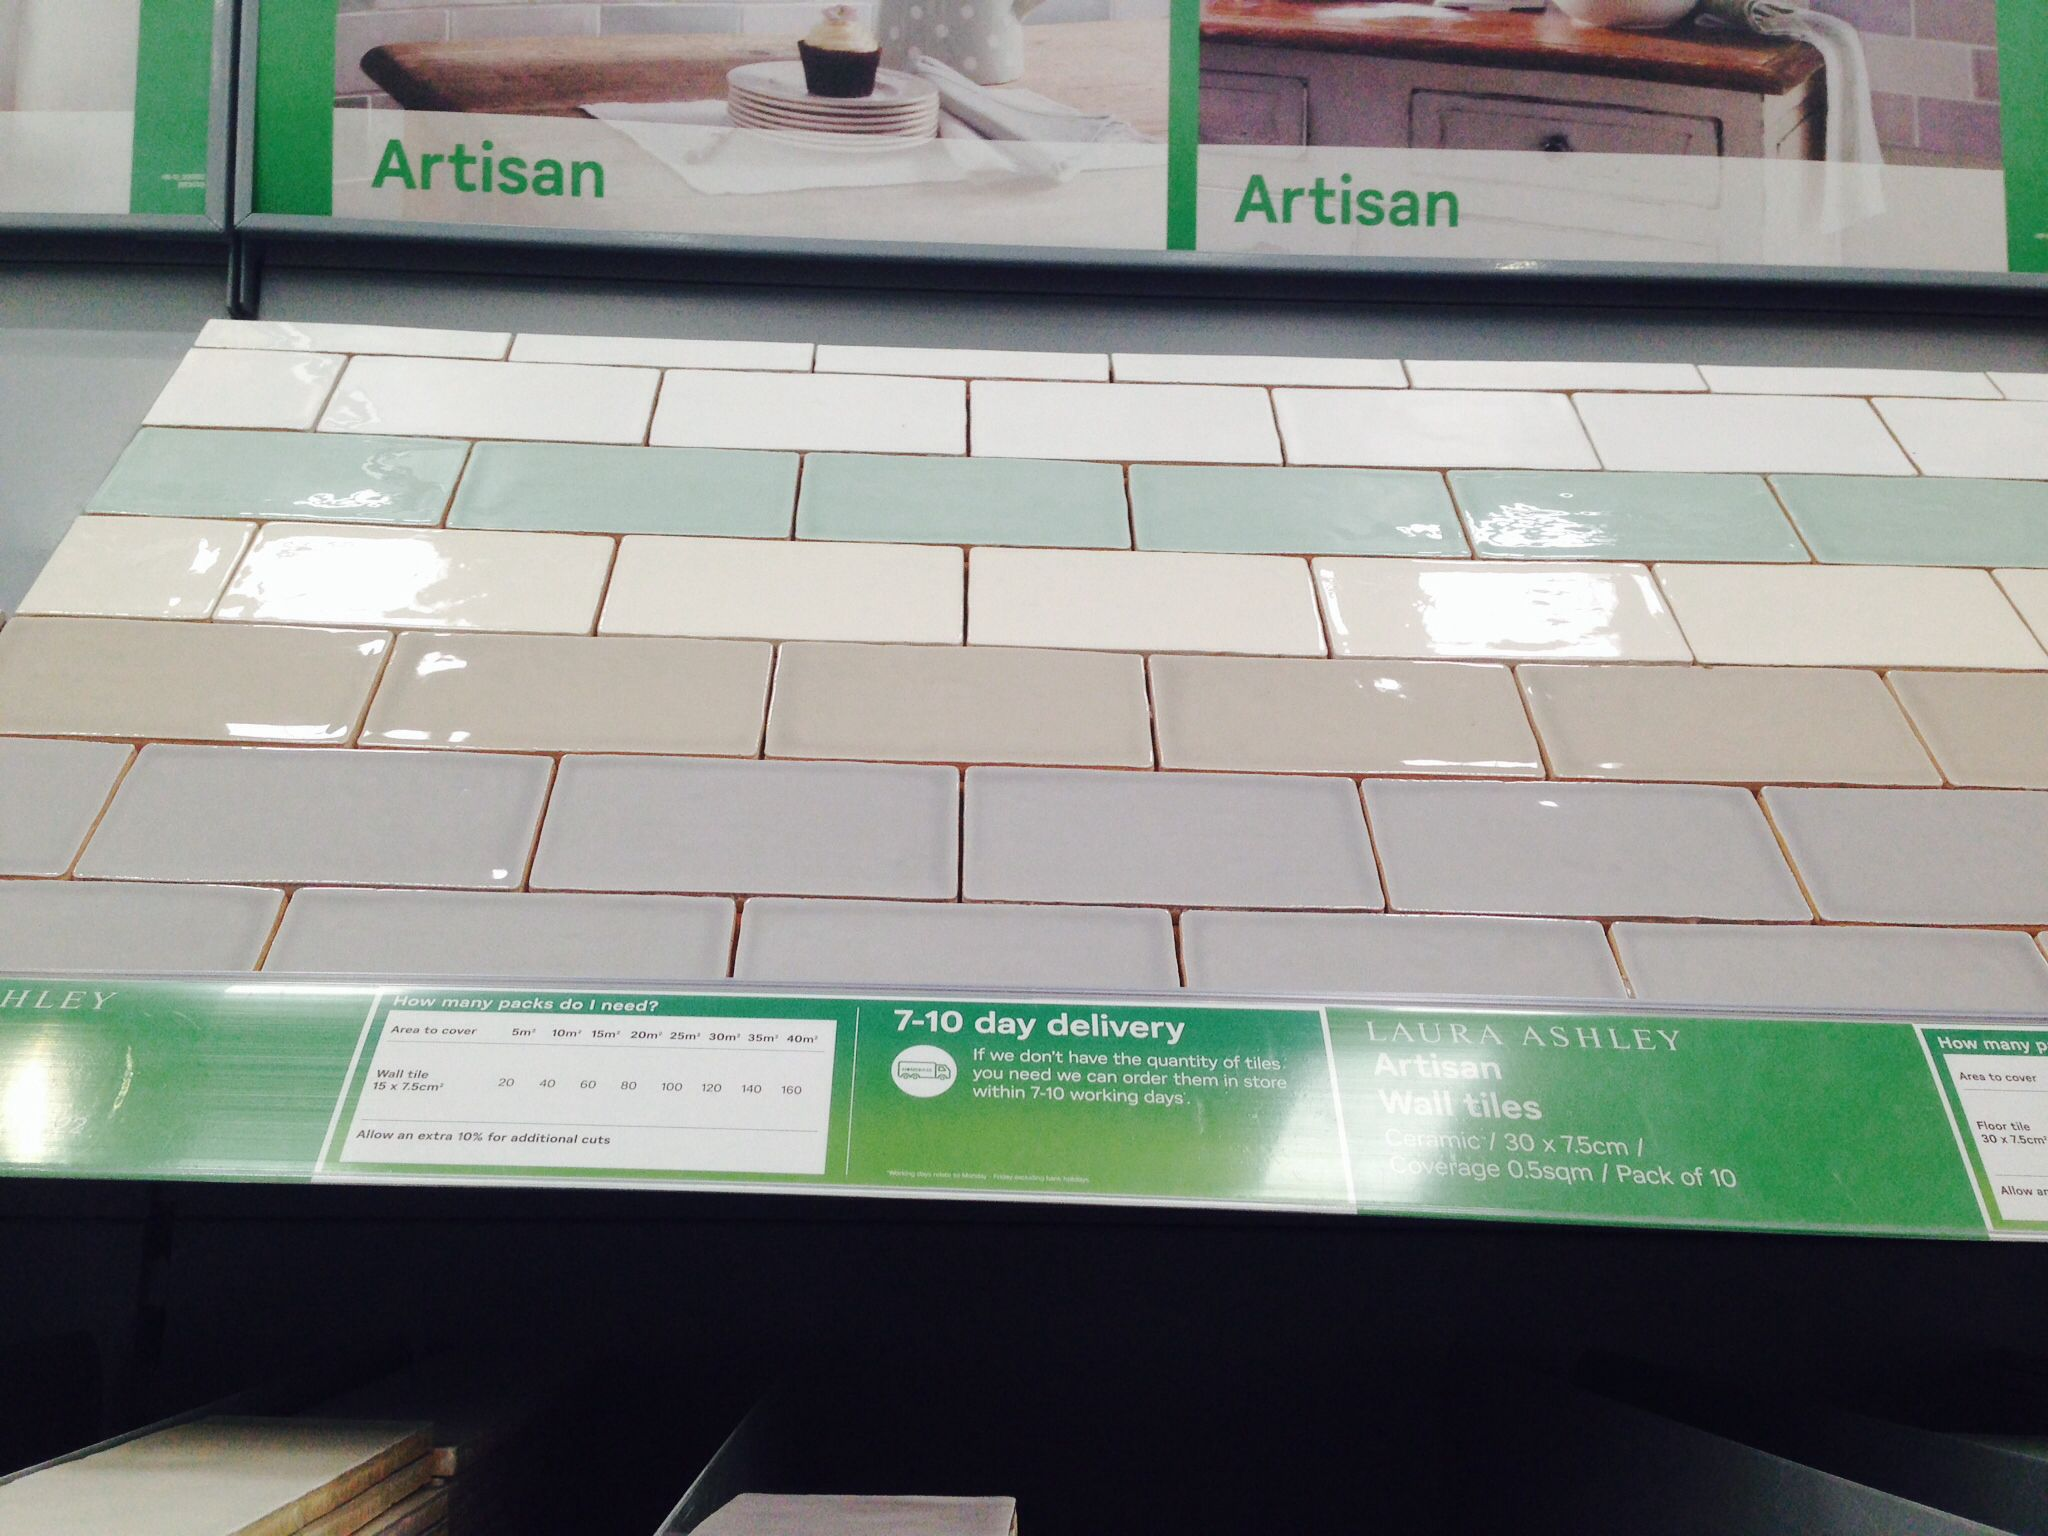 Laura ashley tiles from homebase home ideas pinterest laura ashley tiles from homebase dailygadgetfo Gallery